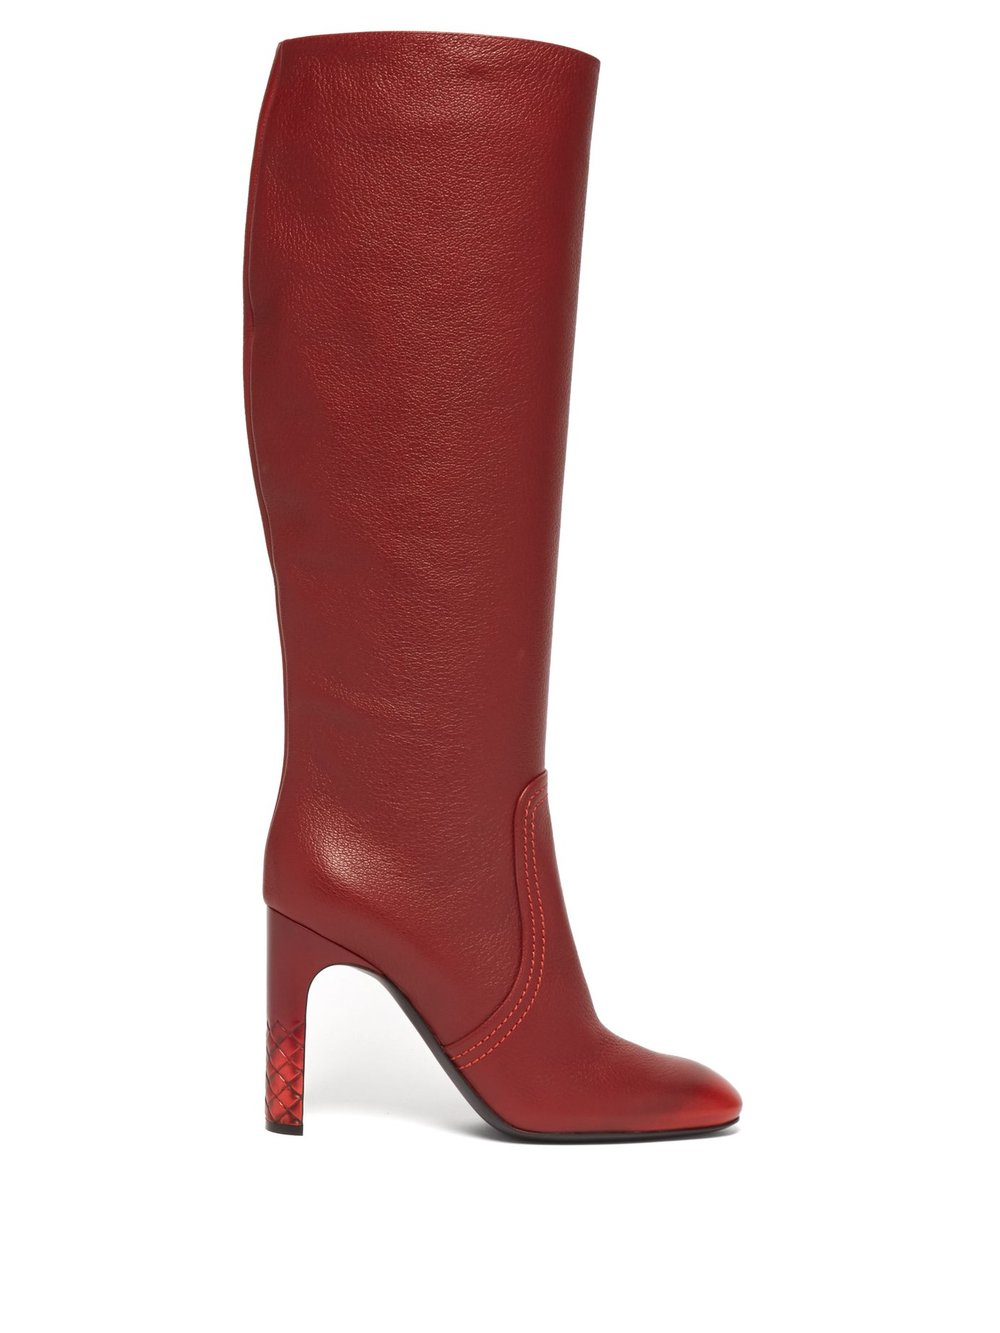 Intrecciato-heel knee-high leather boots